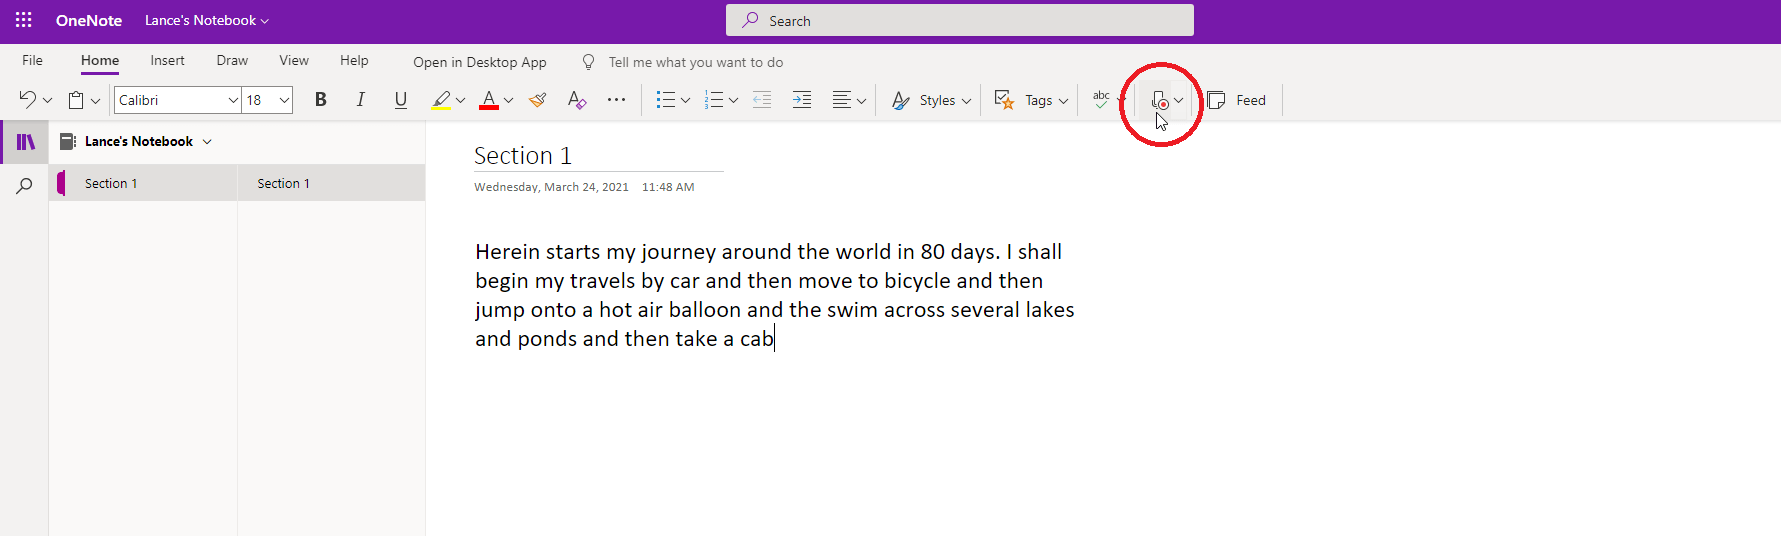 onenote dictation